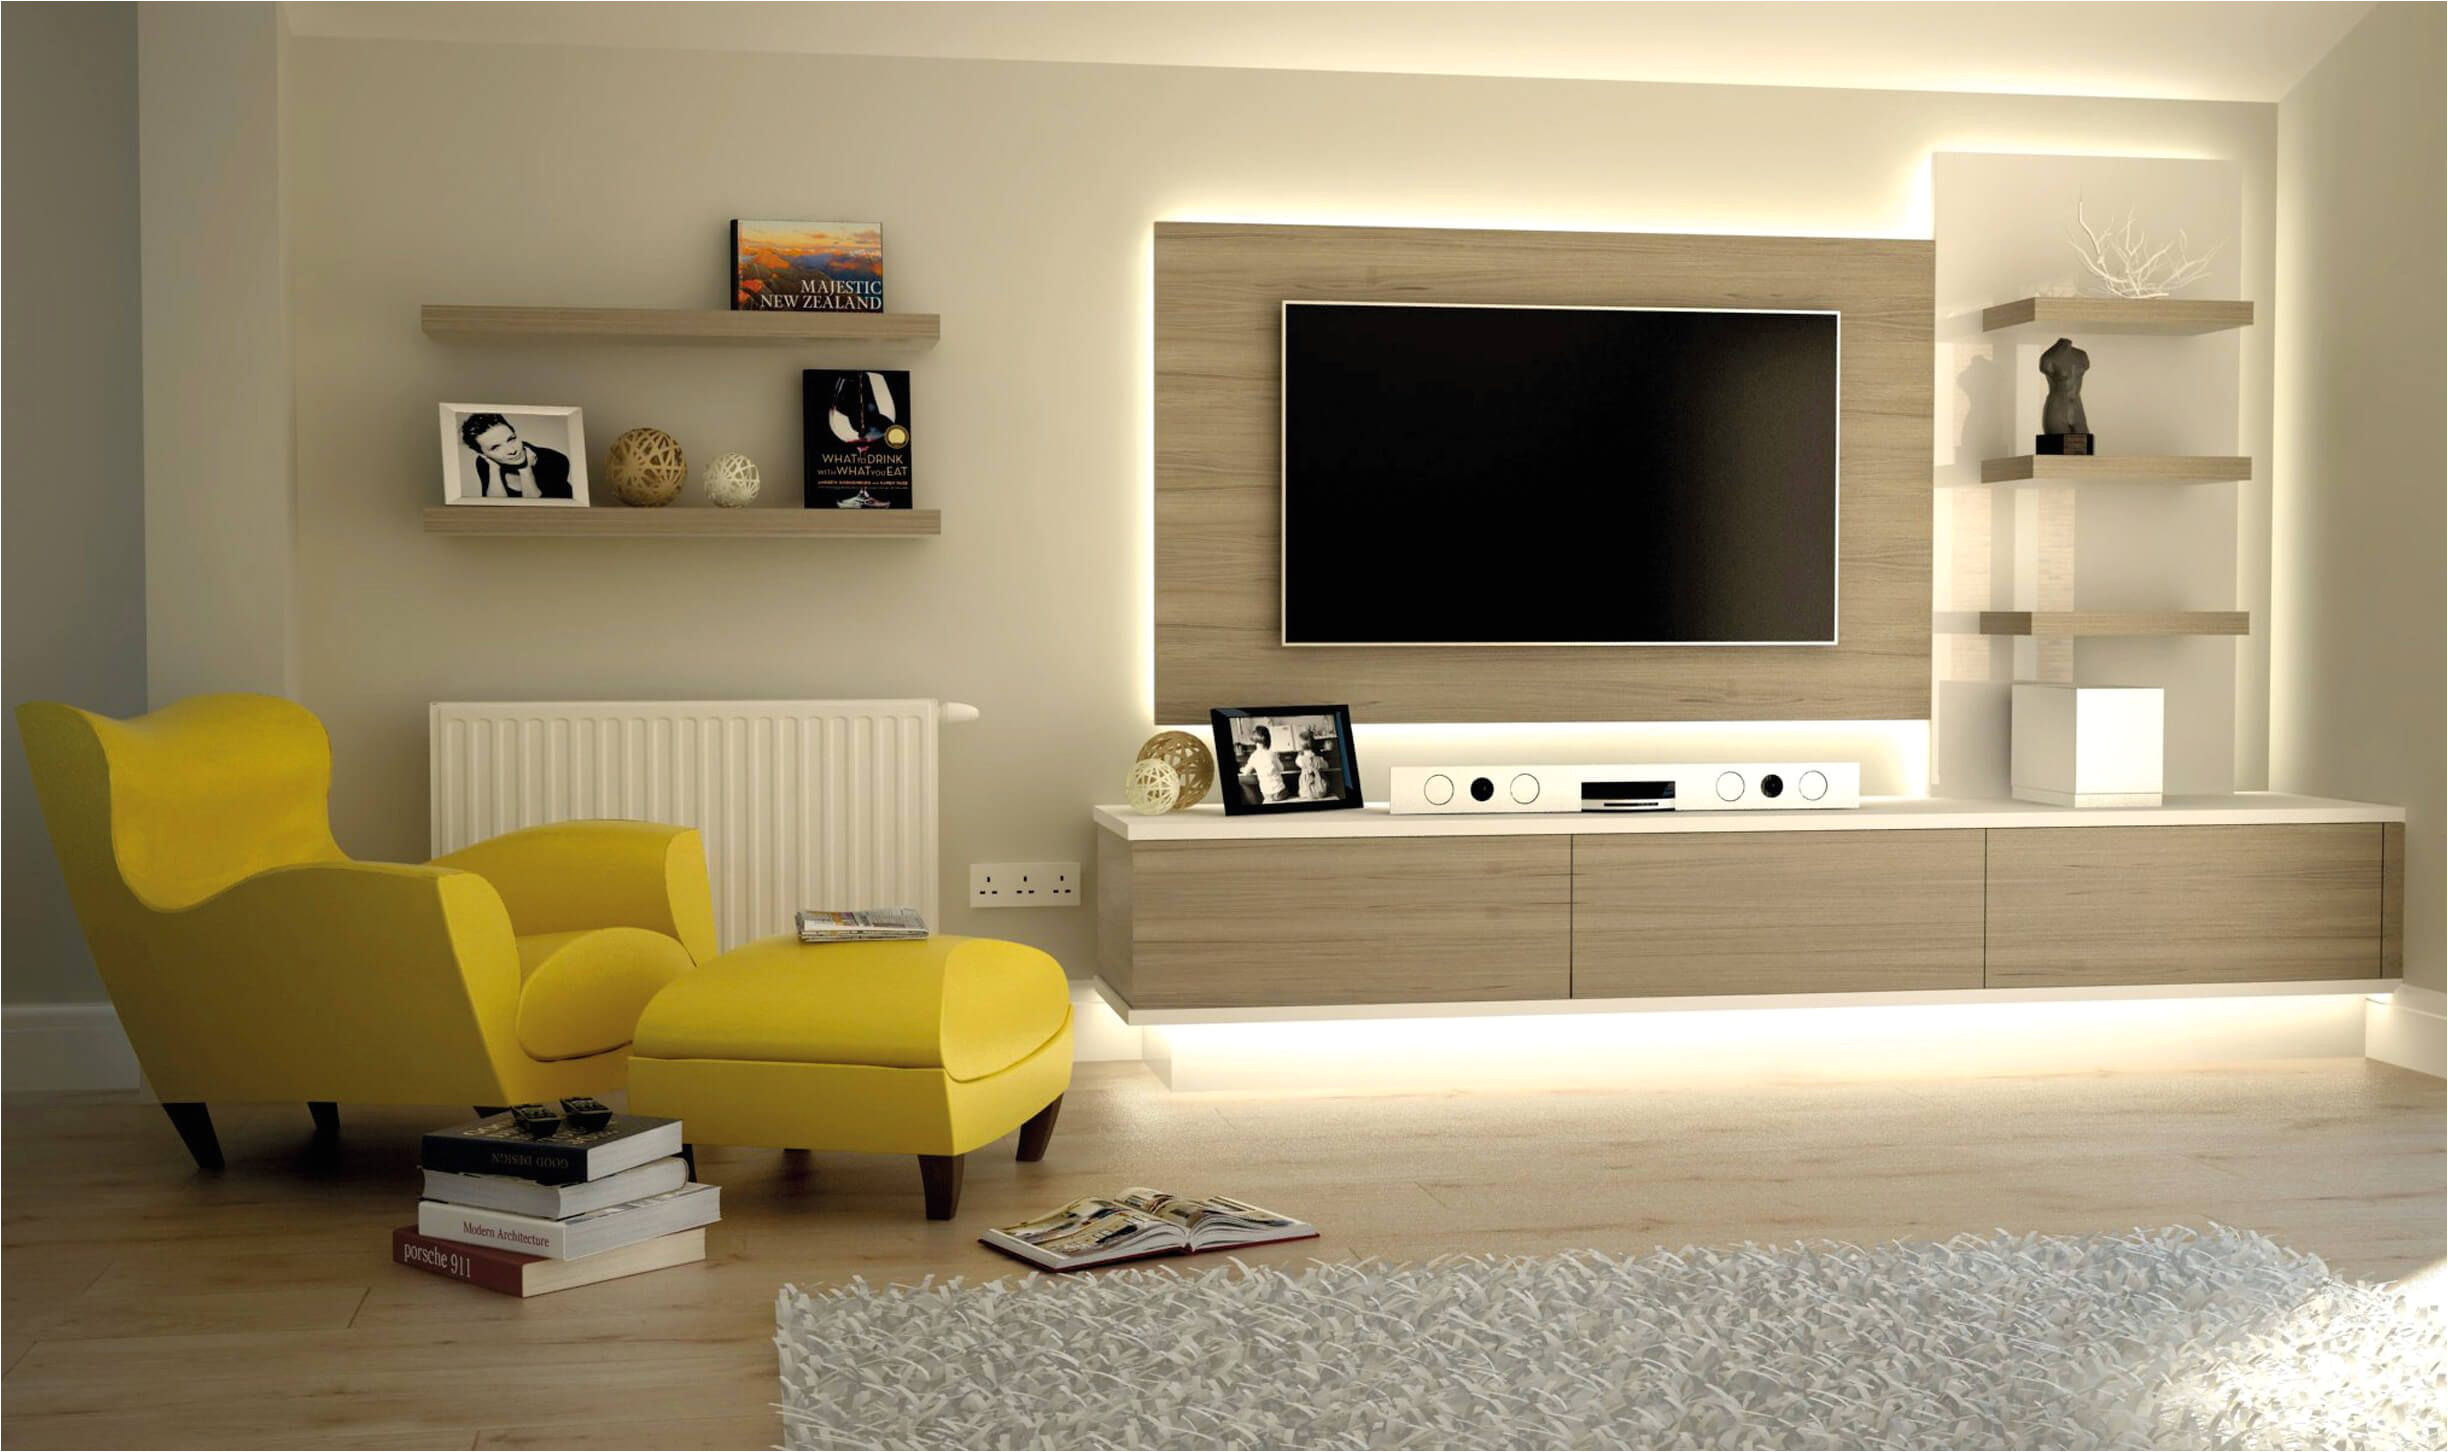 bespoke tv cabinets bookcases and storage units for over 50 years our family and team design create and build beautifully fitting living room furniture